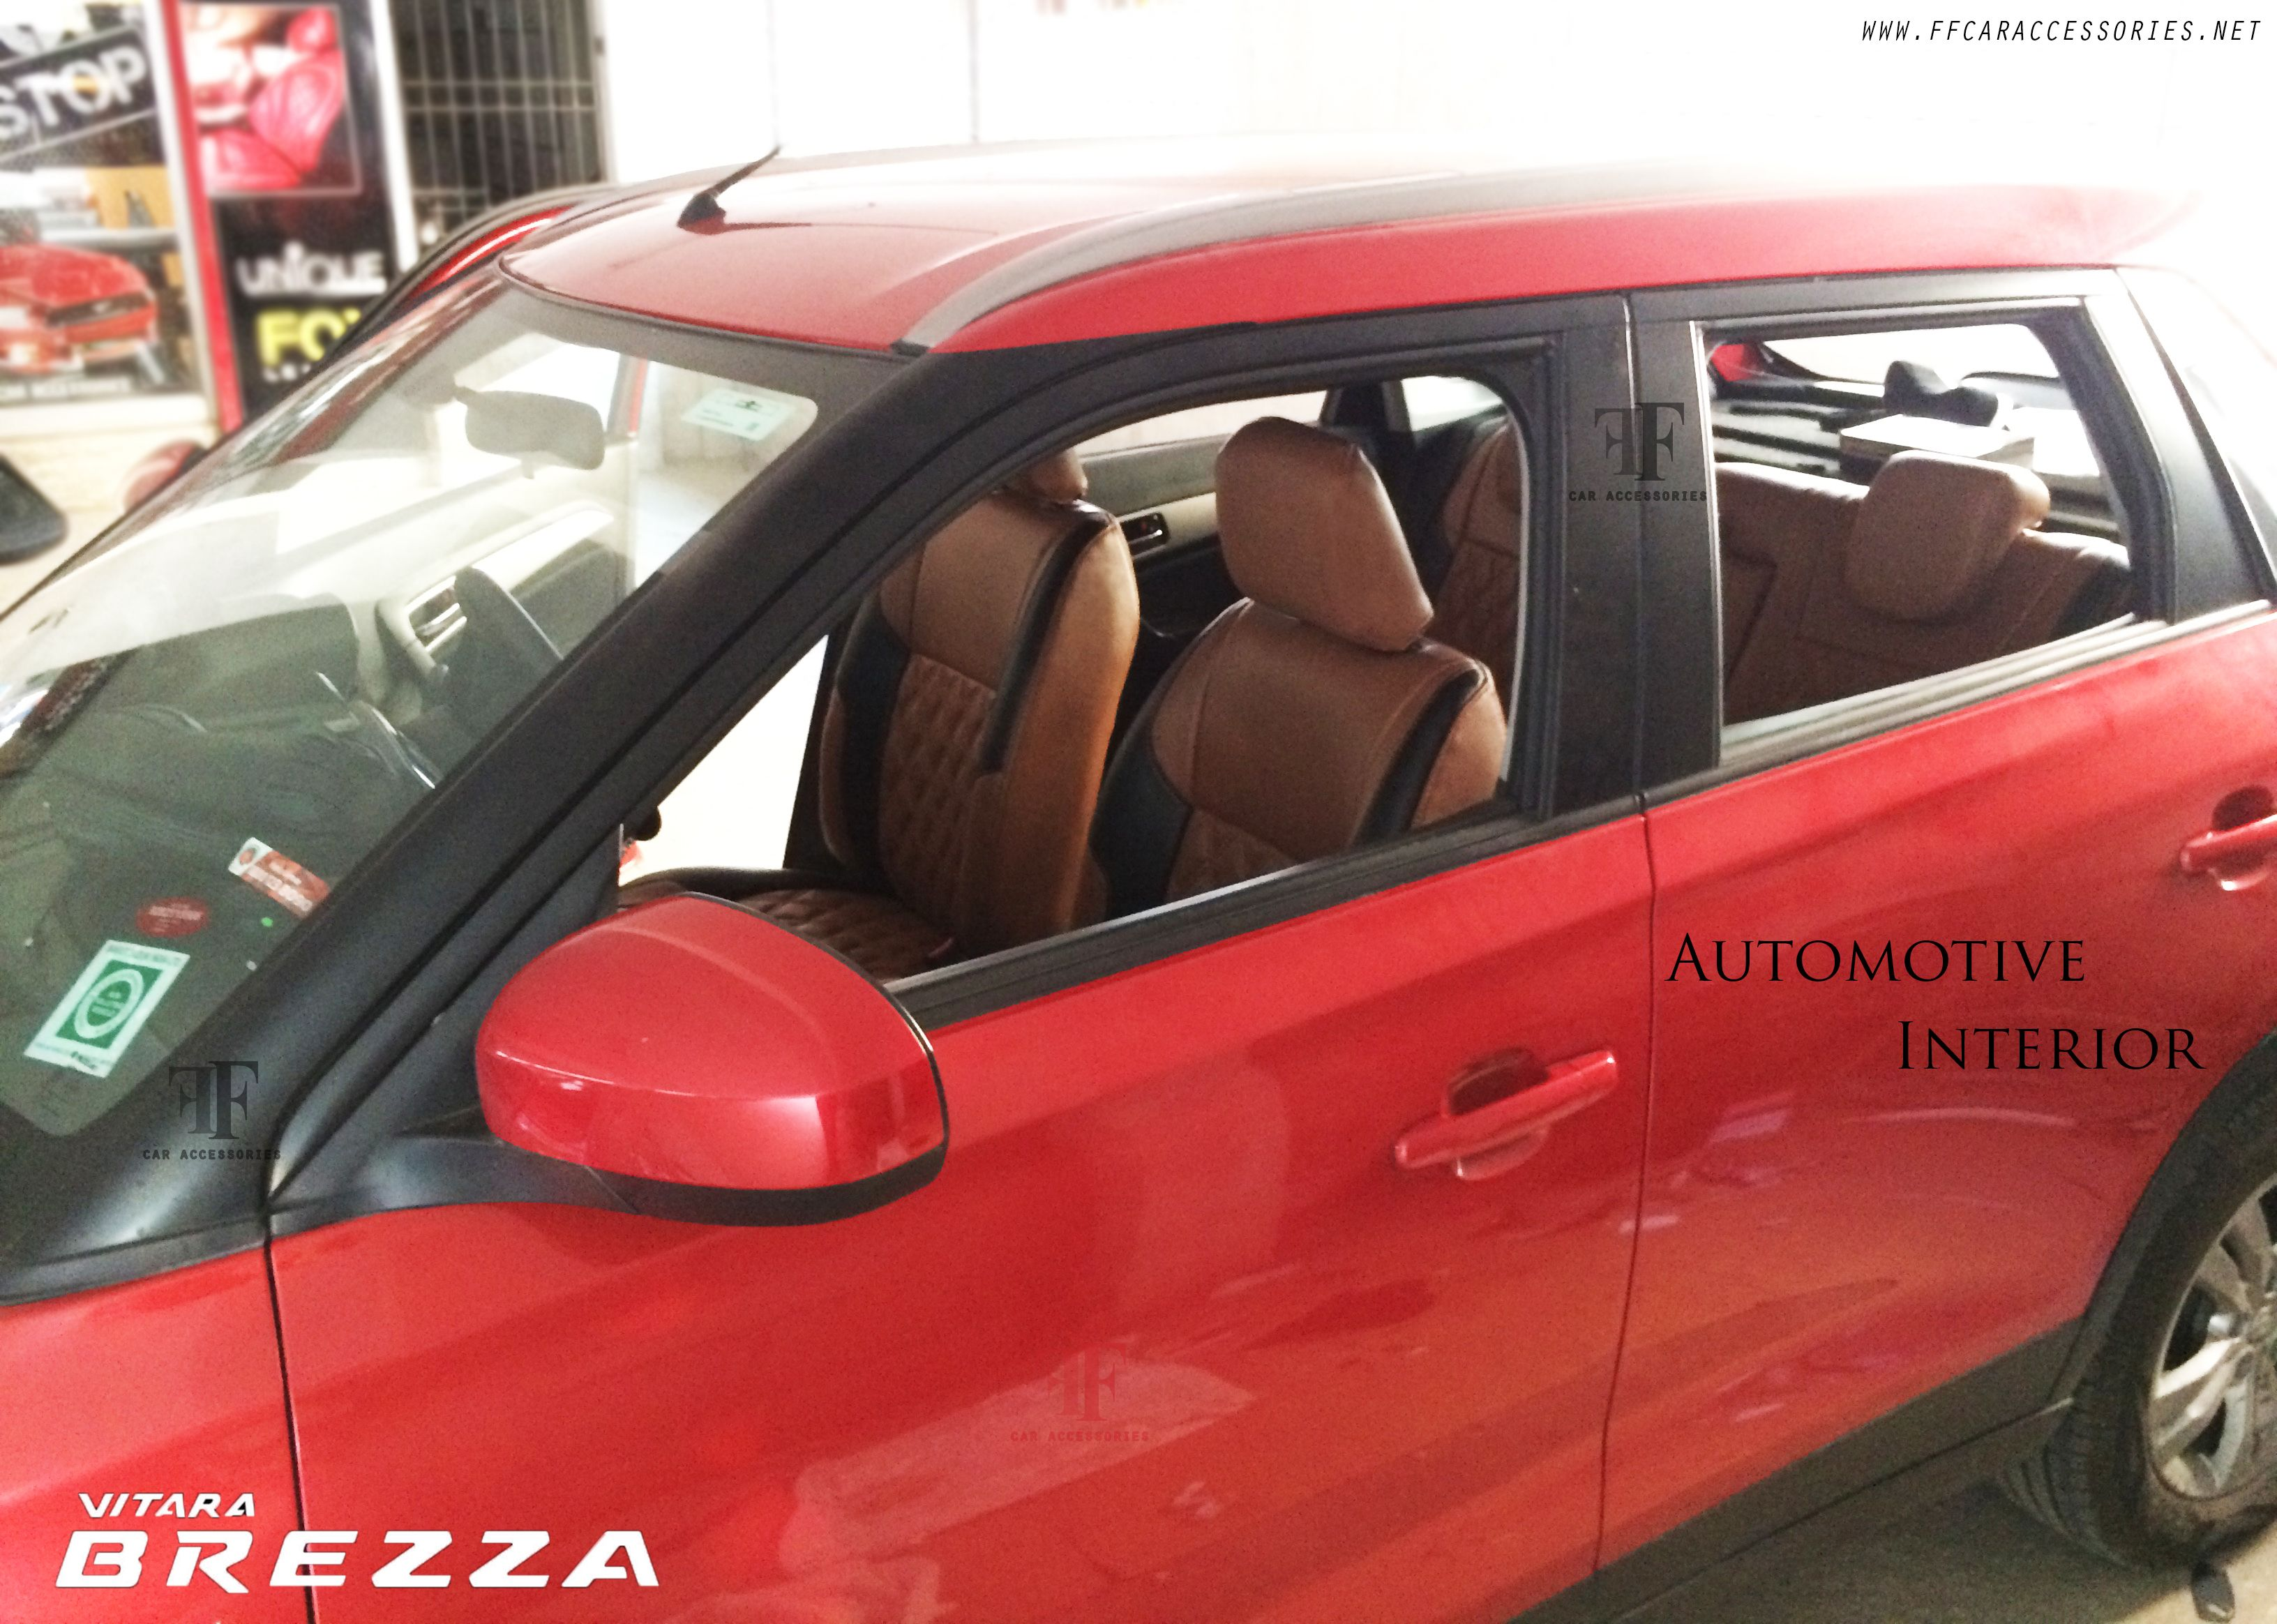 Customised Car Seat Cover For Red Colour Maruti Suzuki Vitara Brezza Designed And Installed By